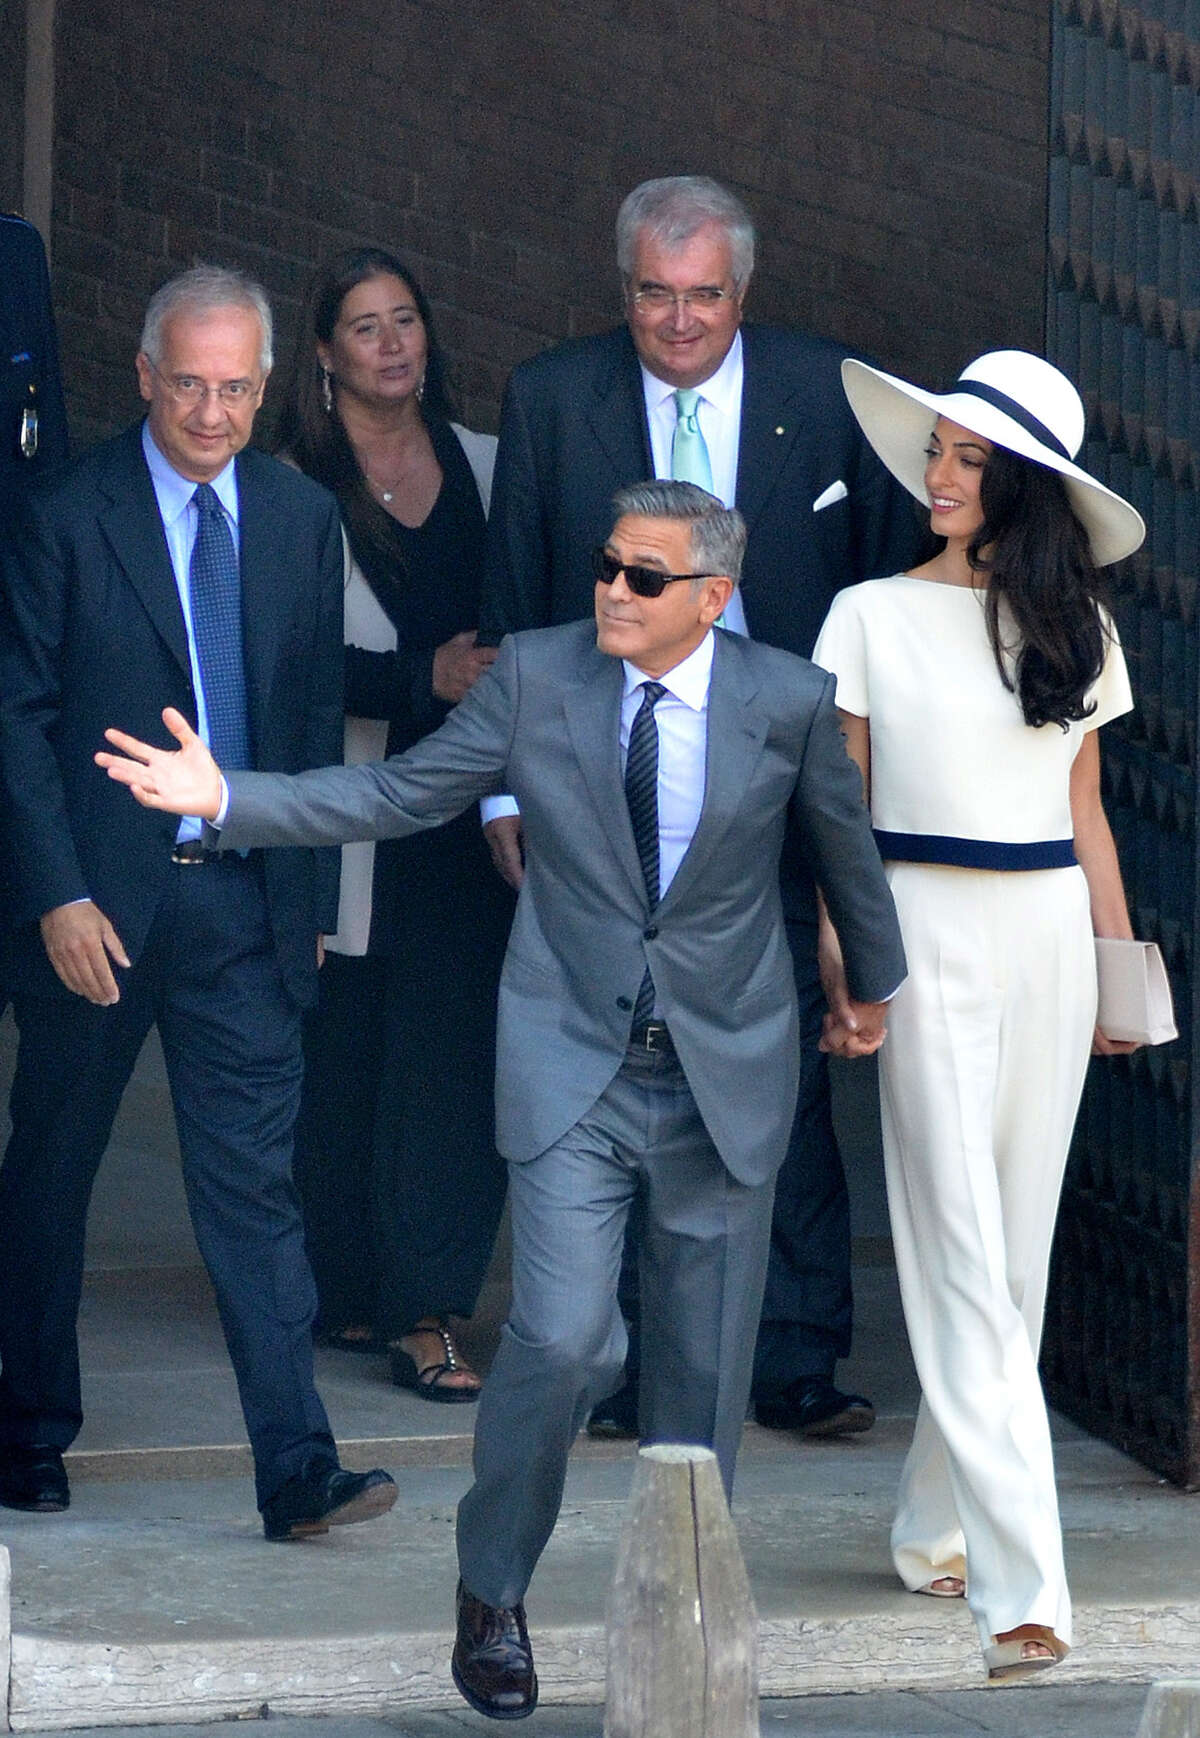 George Clooney and his wife Amal Alamuddin leave the city hall after their civil marriage ceremony performed by former Rome's mayor Walter Veltroni, left, in Venice, Italy, Monday, Sept. 29, 2014. George Clooney married human rights lawyer Amal Alamuddin Saturday, the actor's representative said, out of sight of pursuing paparazzi and adoring crowds. (AP Photo/Luigi Costantini)